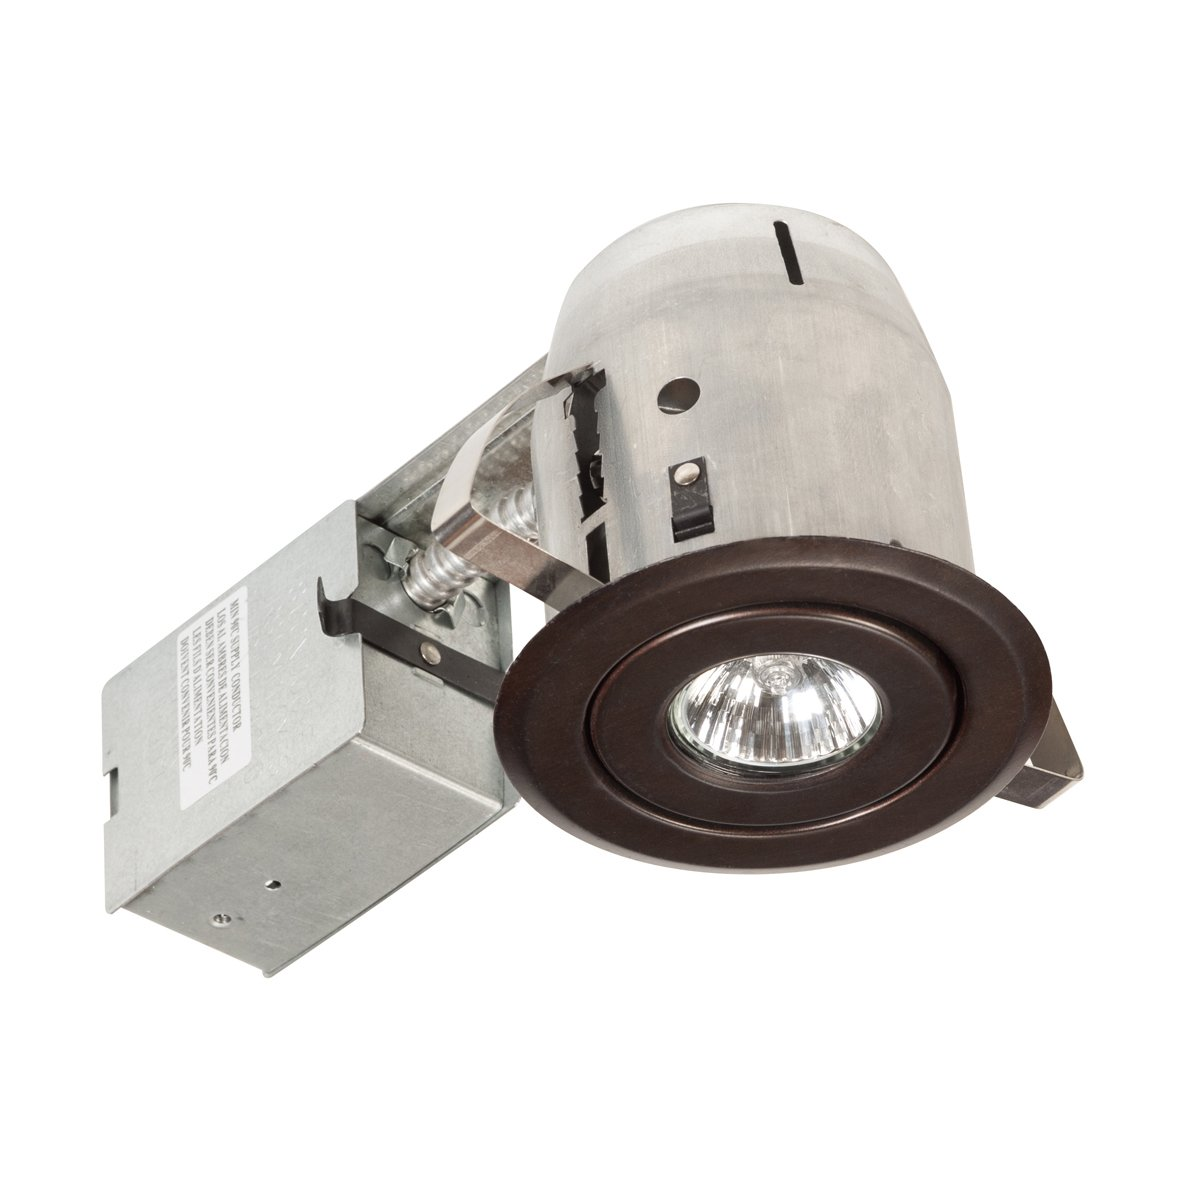 Globe Electric 90013 4 inch Recessed Lighting Kit, Swivel, Dark Bronze Finish, Spot Light by Globe Electric